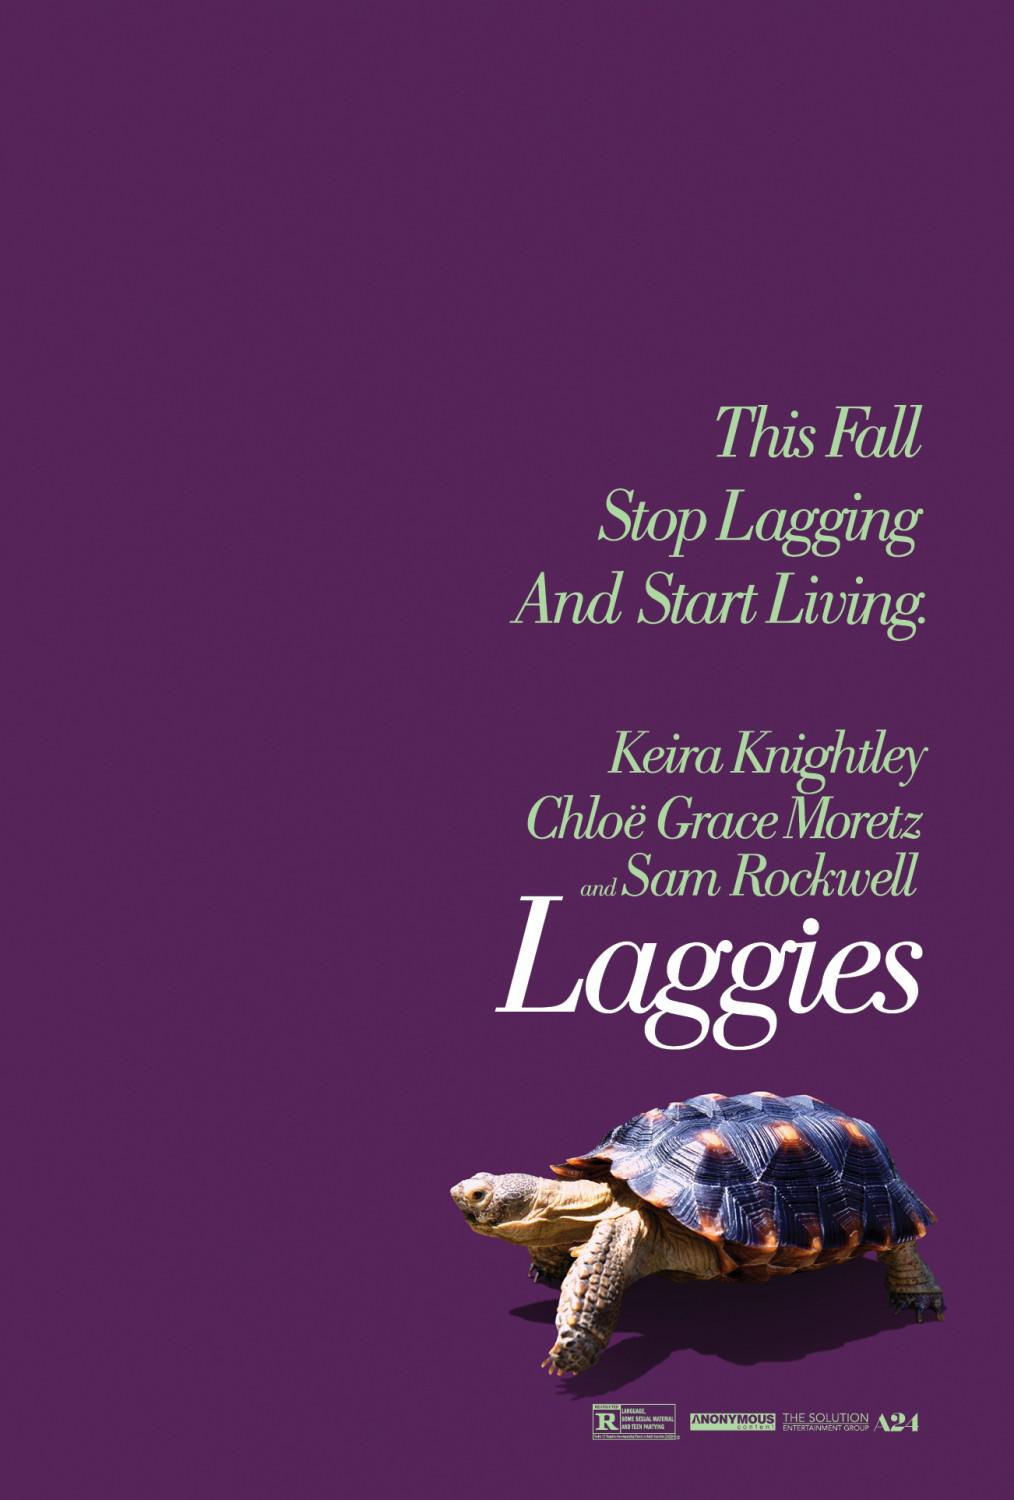 Laggies - Say When - Dimmi Quando - Girls Only - poster